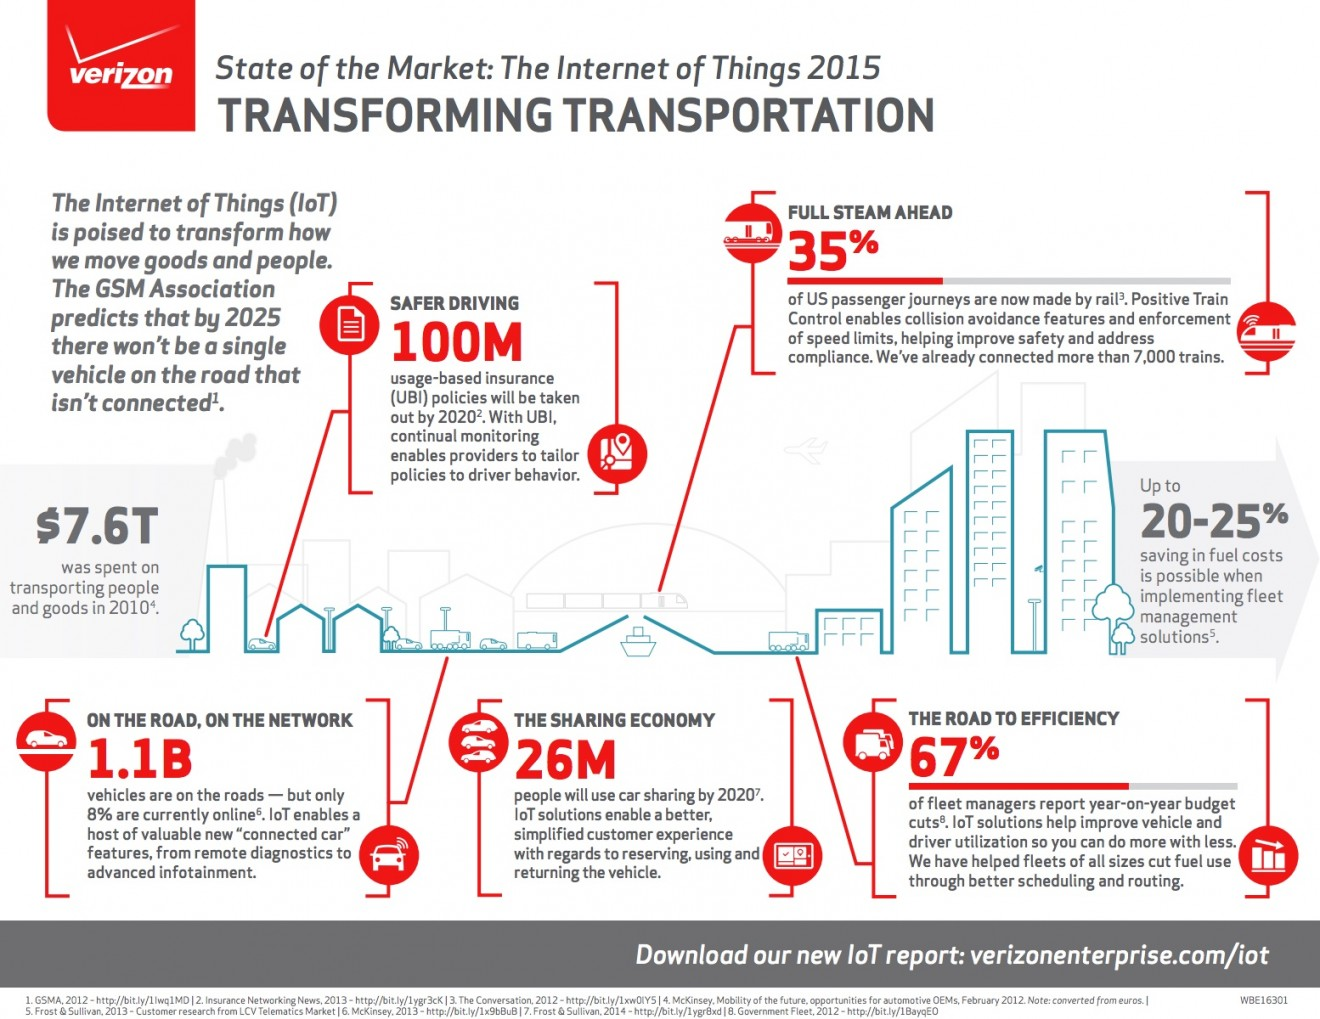 www_verizonenterprise_com_resources_infographic_ig_transforming-transportation_en_xg_pdf1